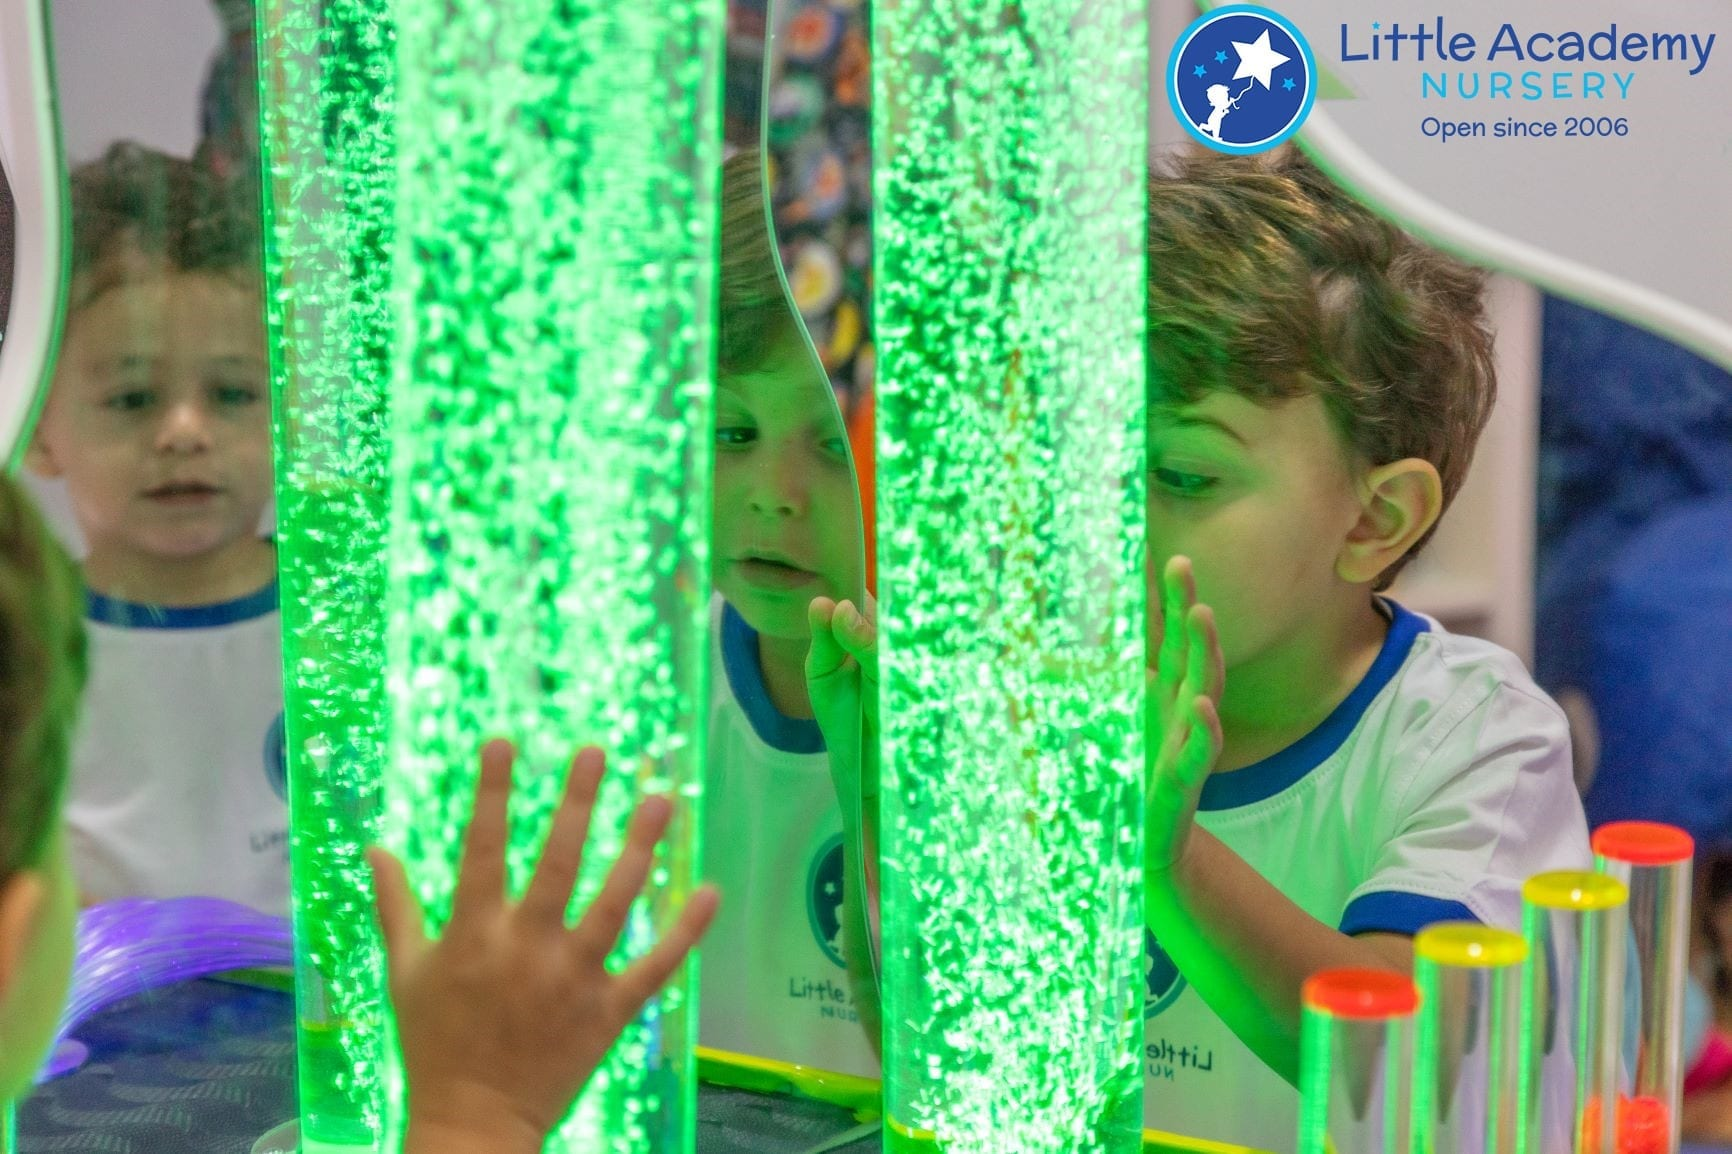 A group of students are doing activity in a sensory room. They are touching a sensory play device.